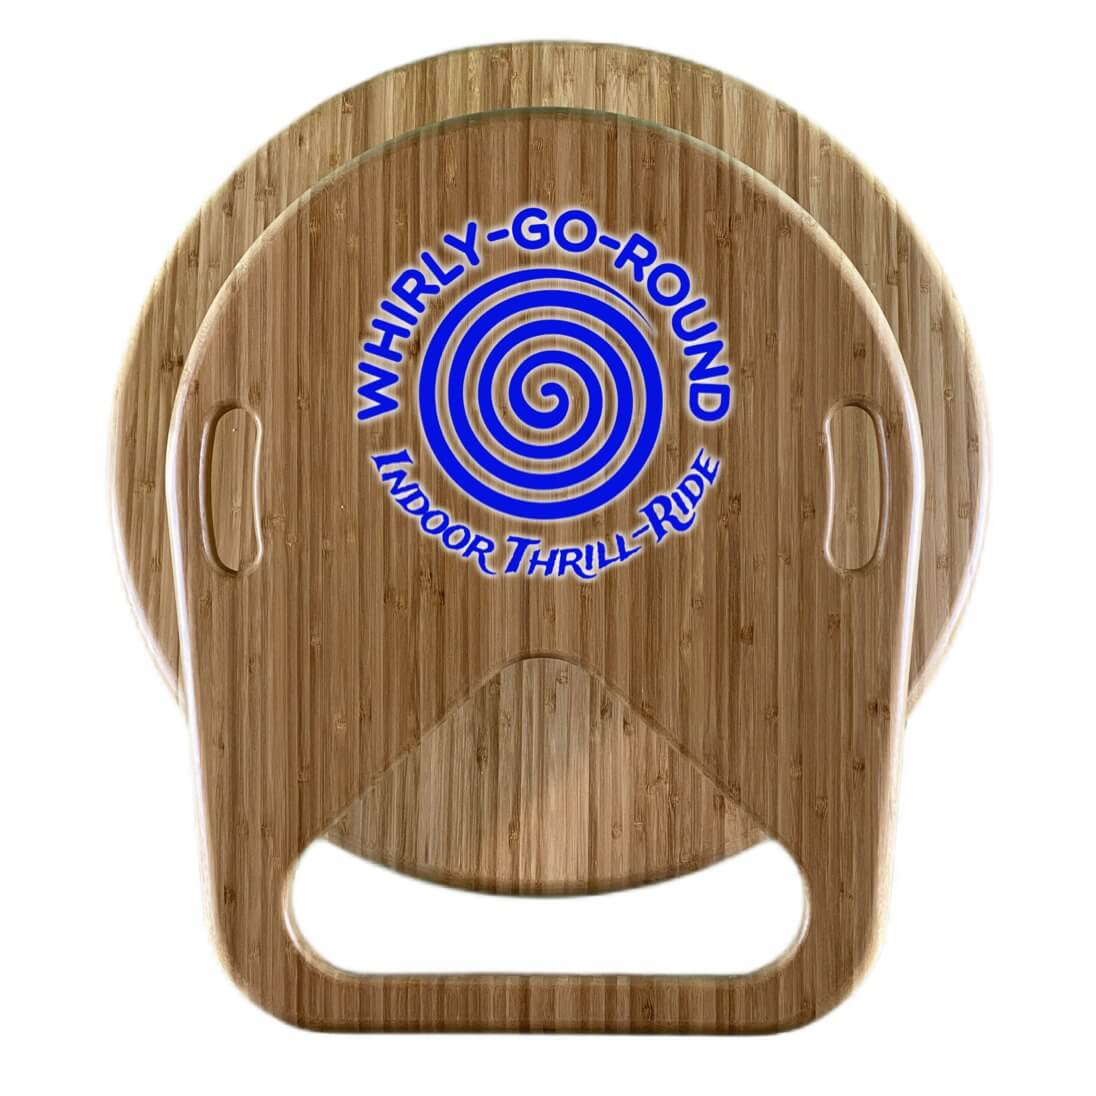 Whirly-Go-Round top view with logo